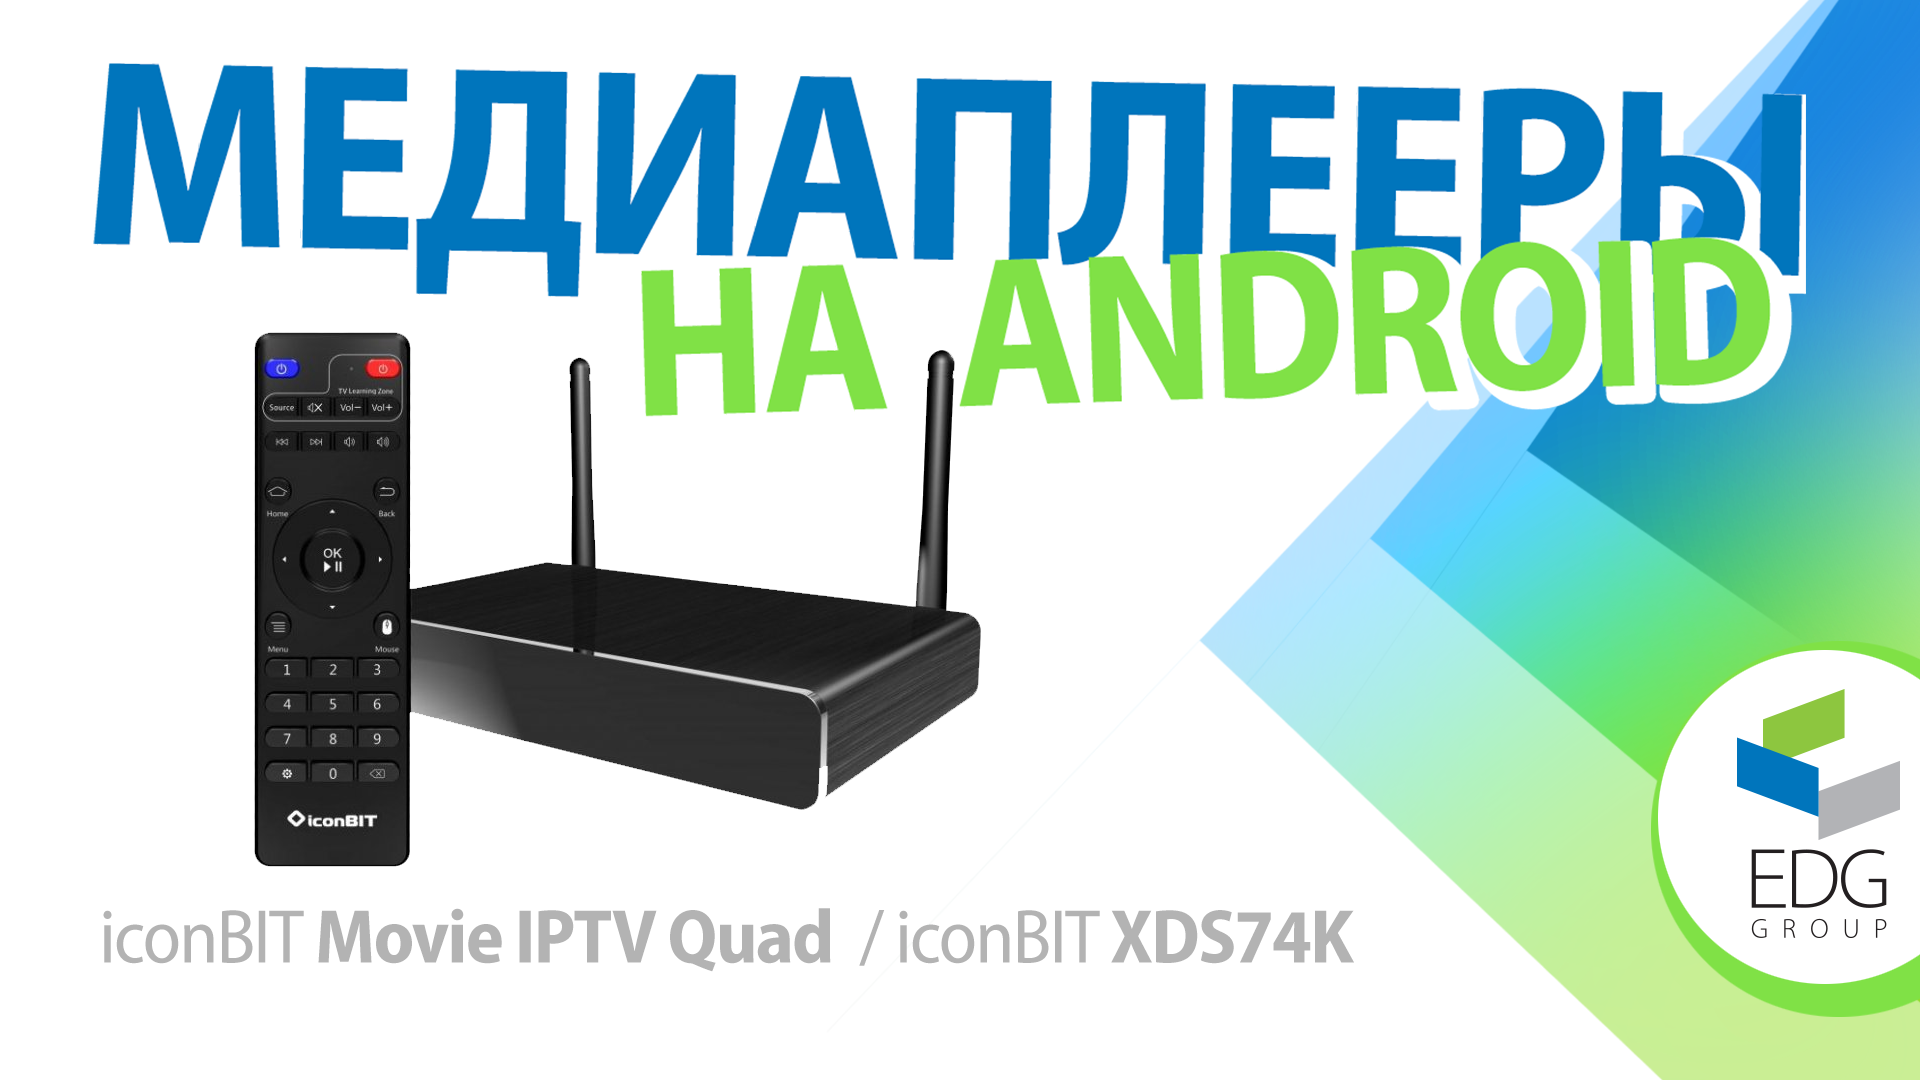 Обзор медиаплееров iconBIT XDS74K & iconBIT Movie IPTV Quad